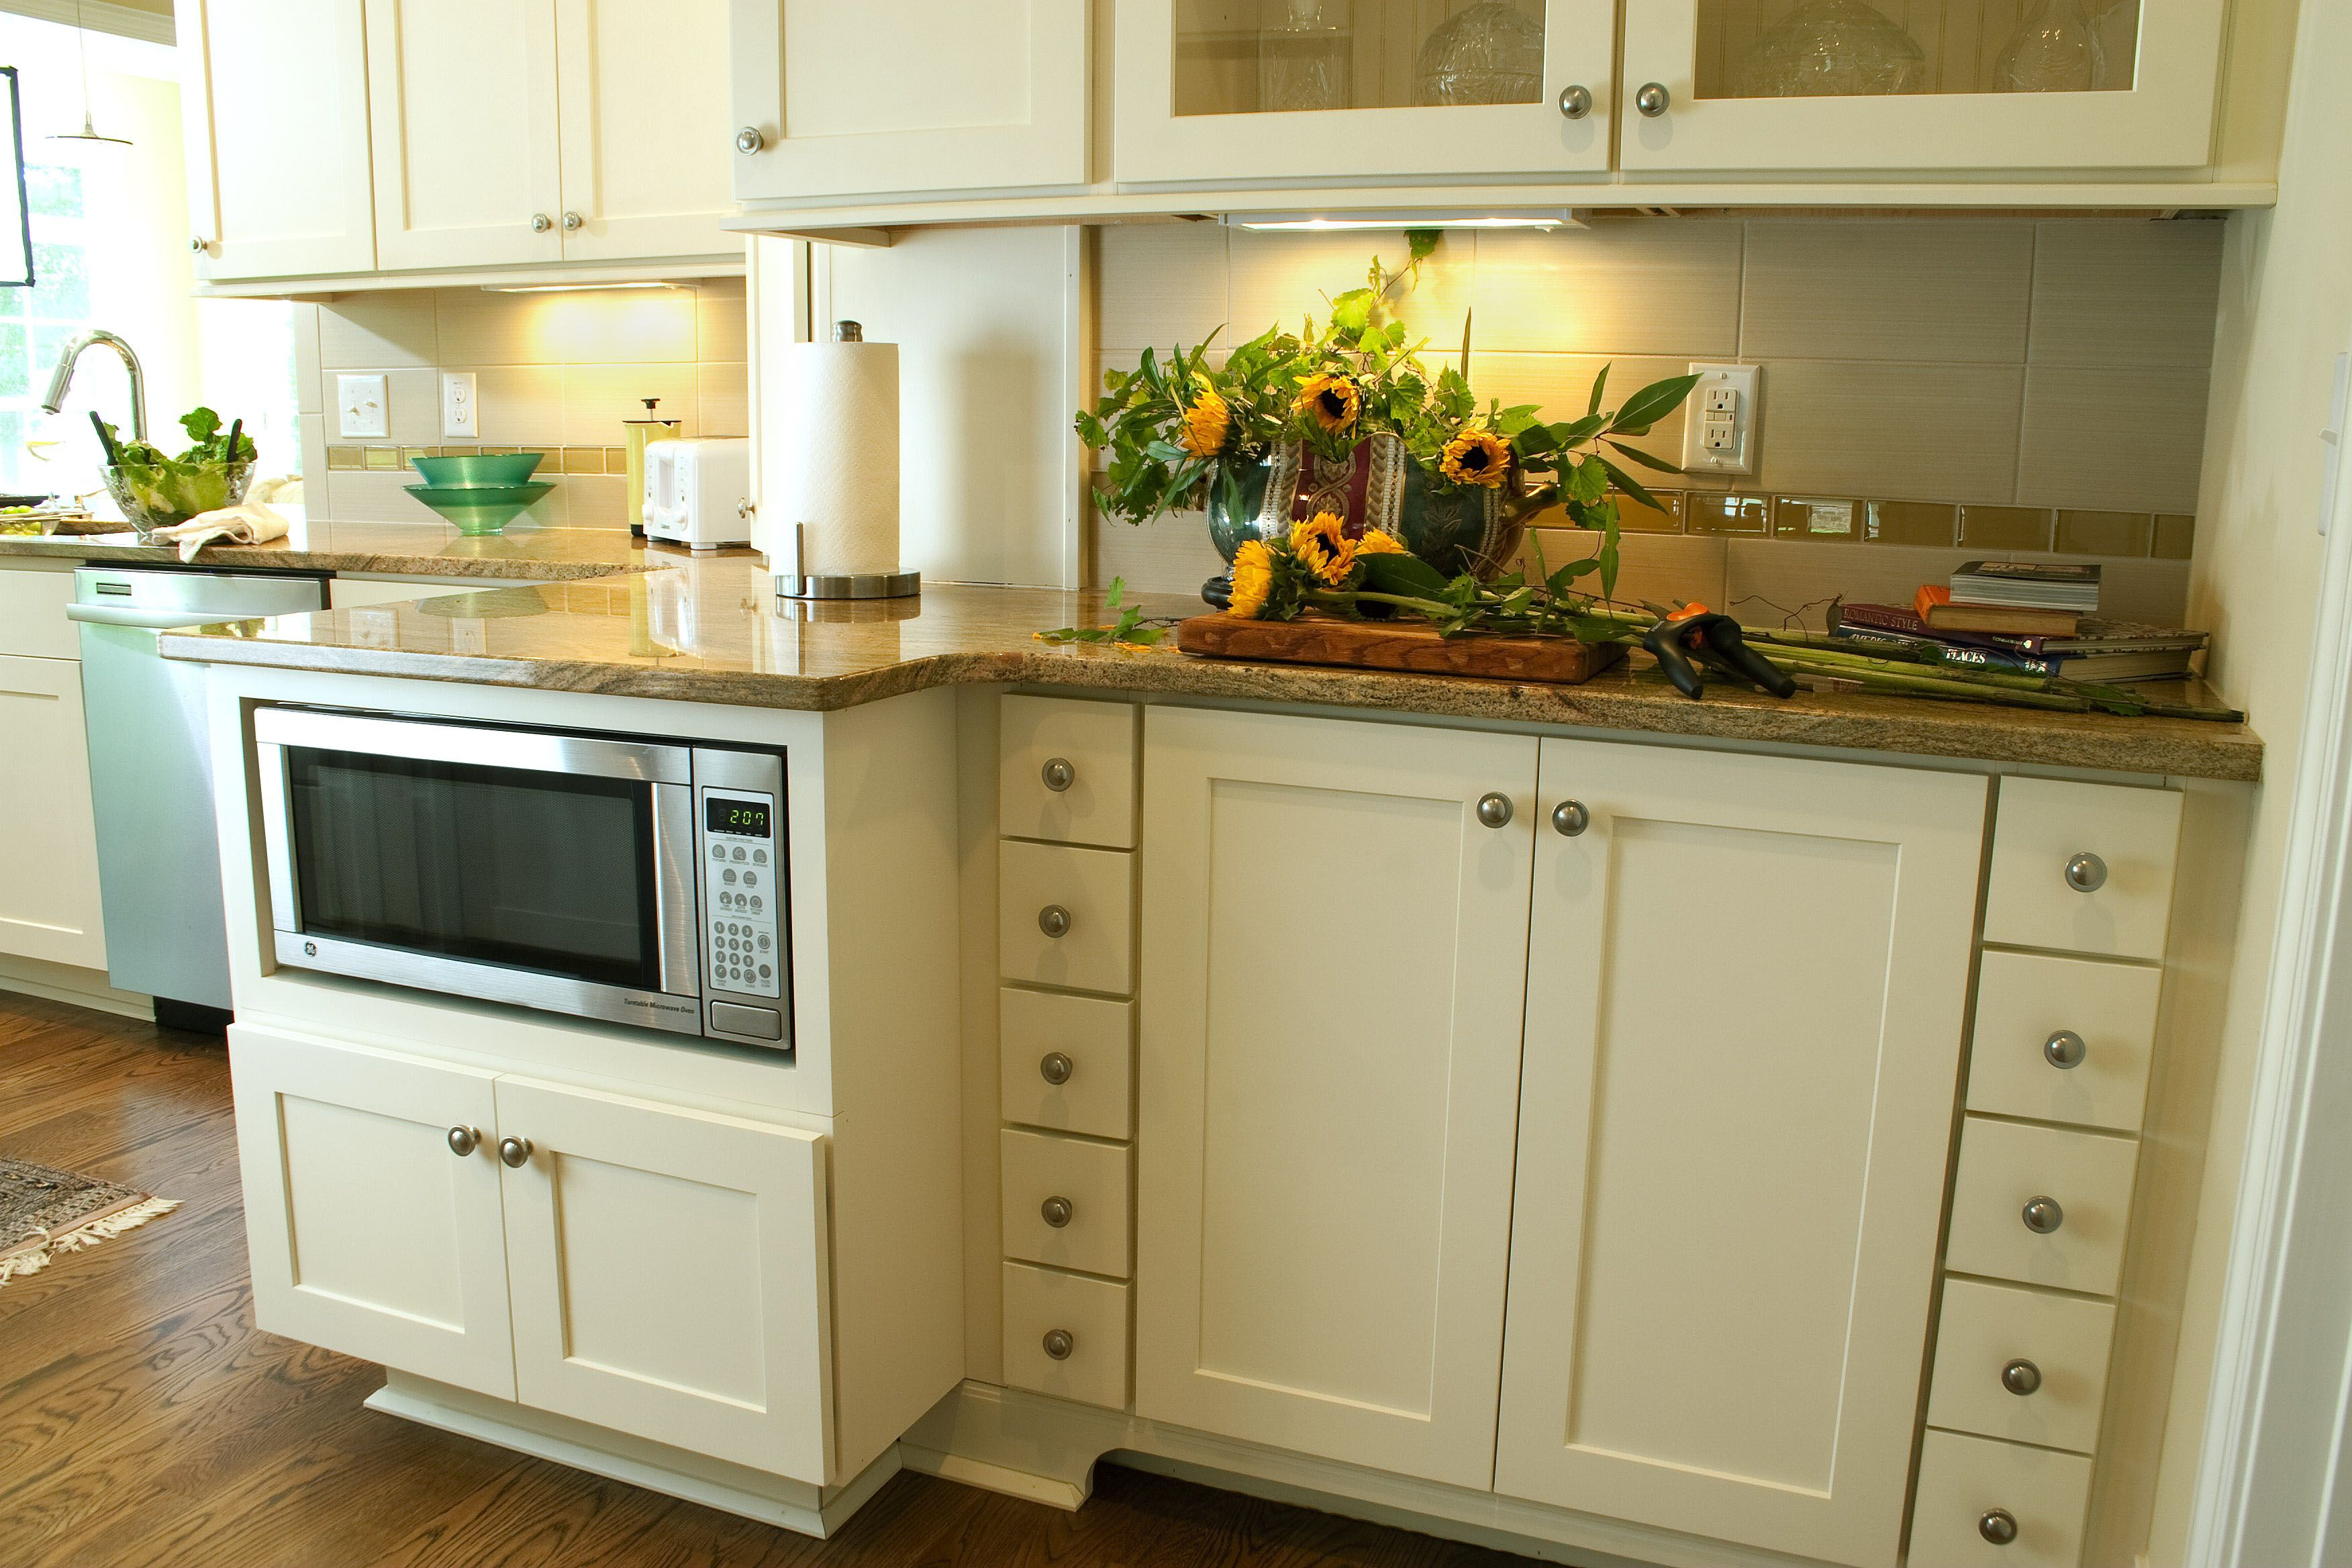 Rockford Painted Linen Shaker Undercounter Microwave Cabinets Inspiration Hardware Kitchen Cabinets Design Inspiration